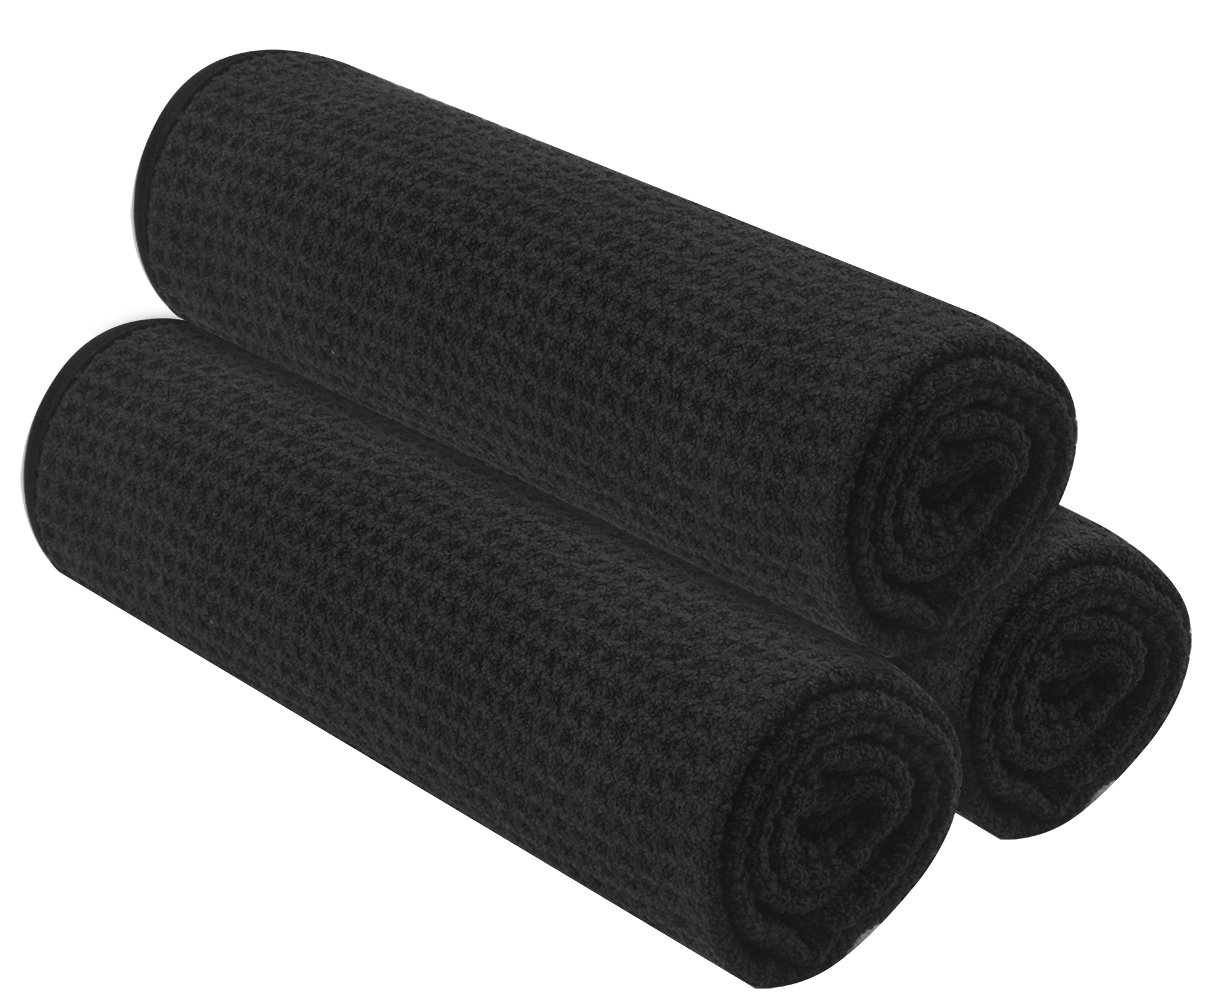 KinHwa Scatch Free Auto Detailing Towels Microfiber Car Drying Towels Super Absorbent Car Cleaning Towels Lint Free Waffle Weave Car Wash Towel (Blackx3, 16inchx24inch)